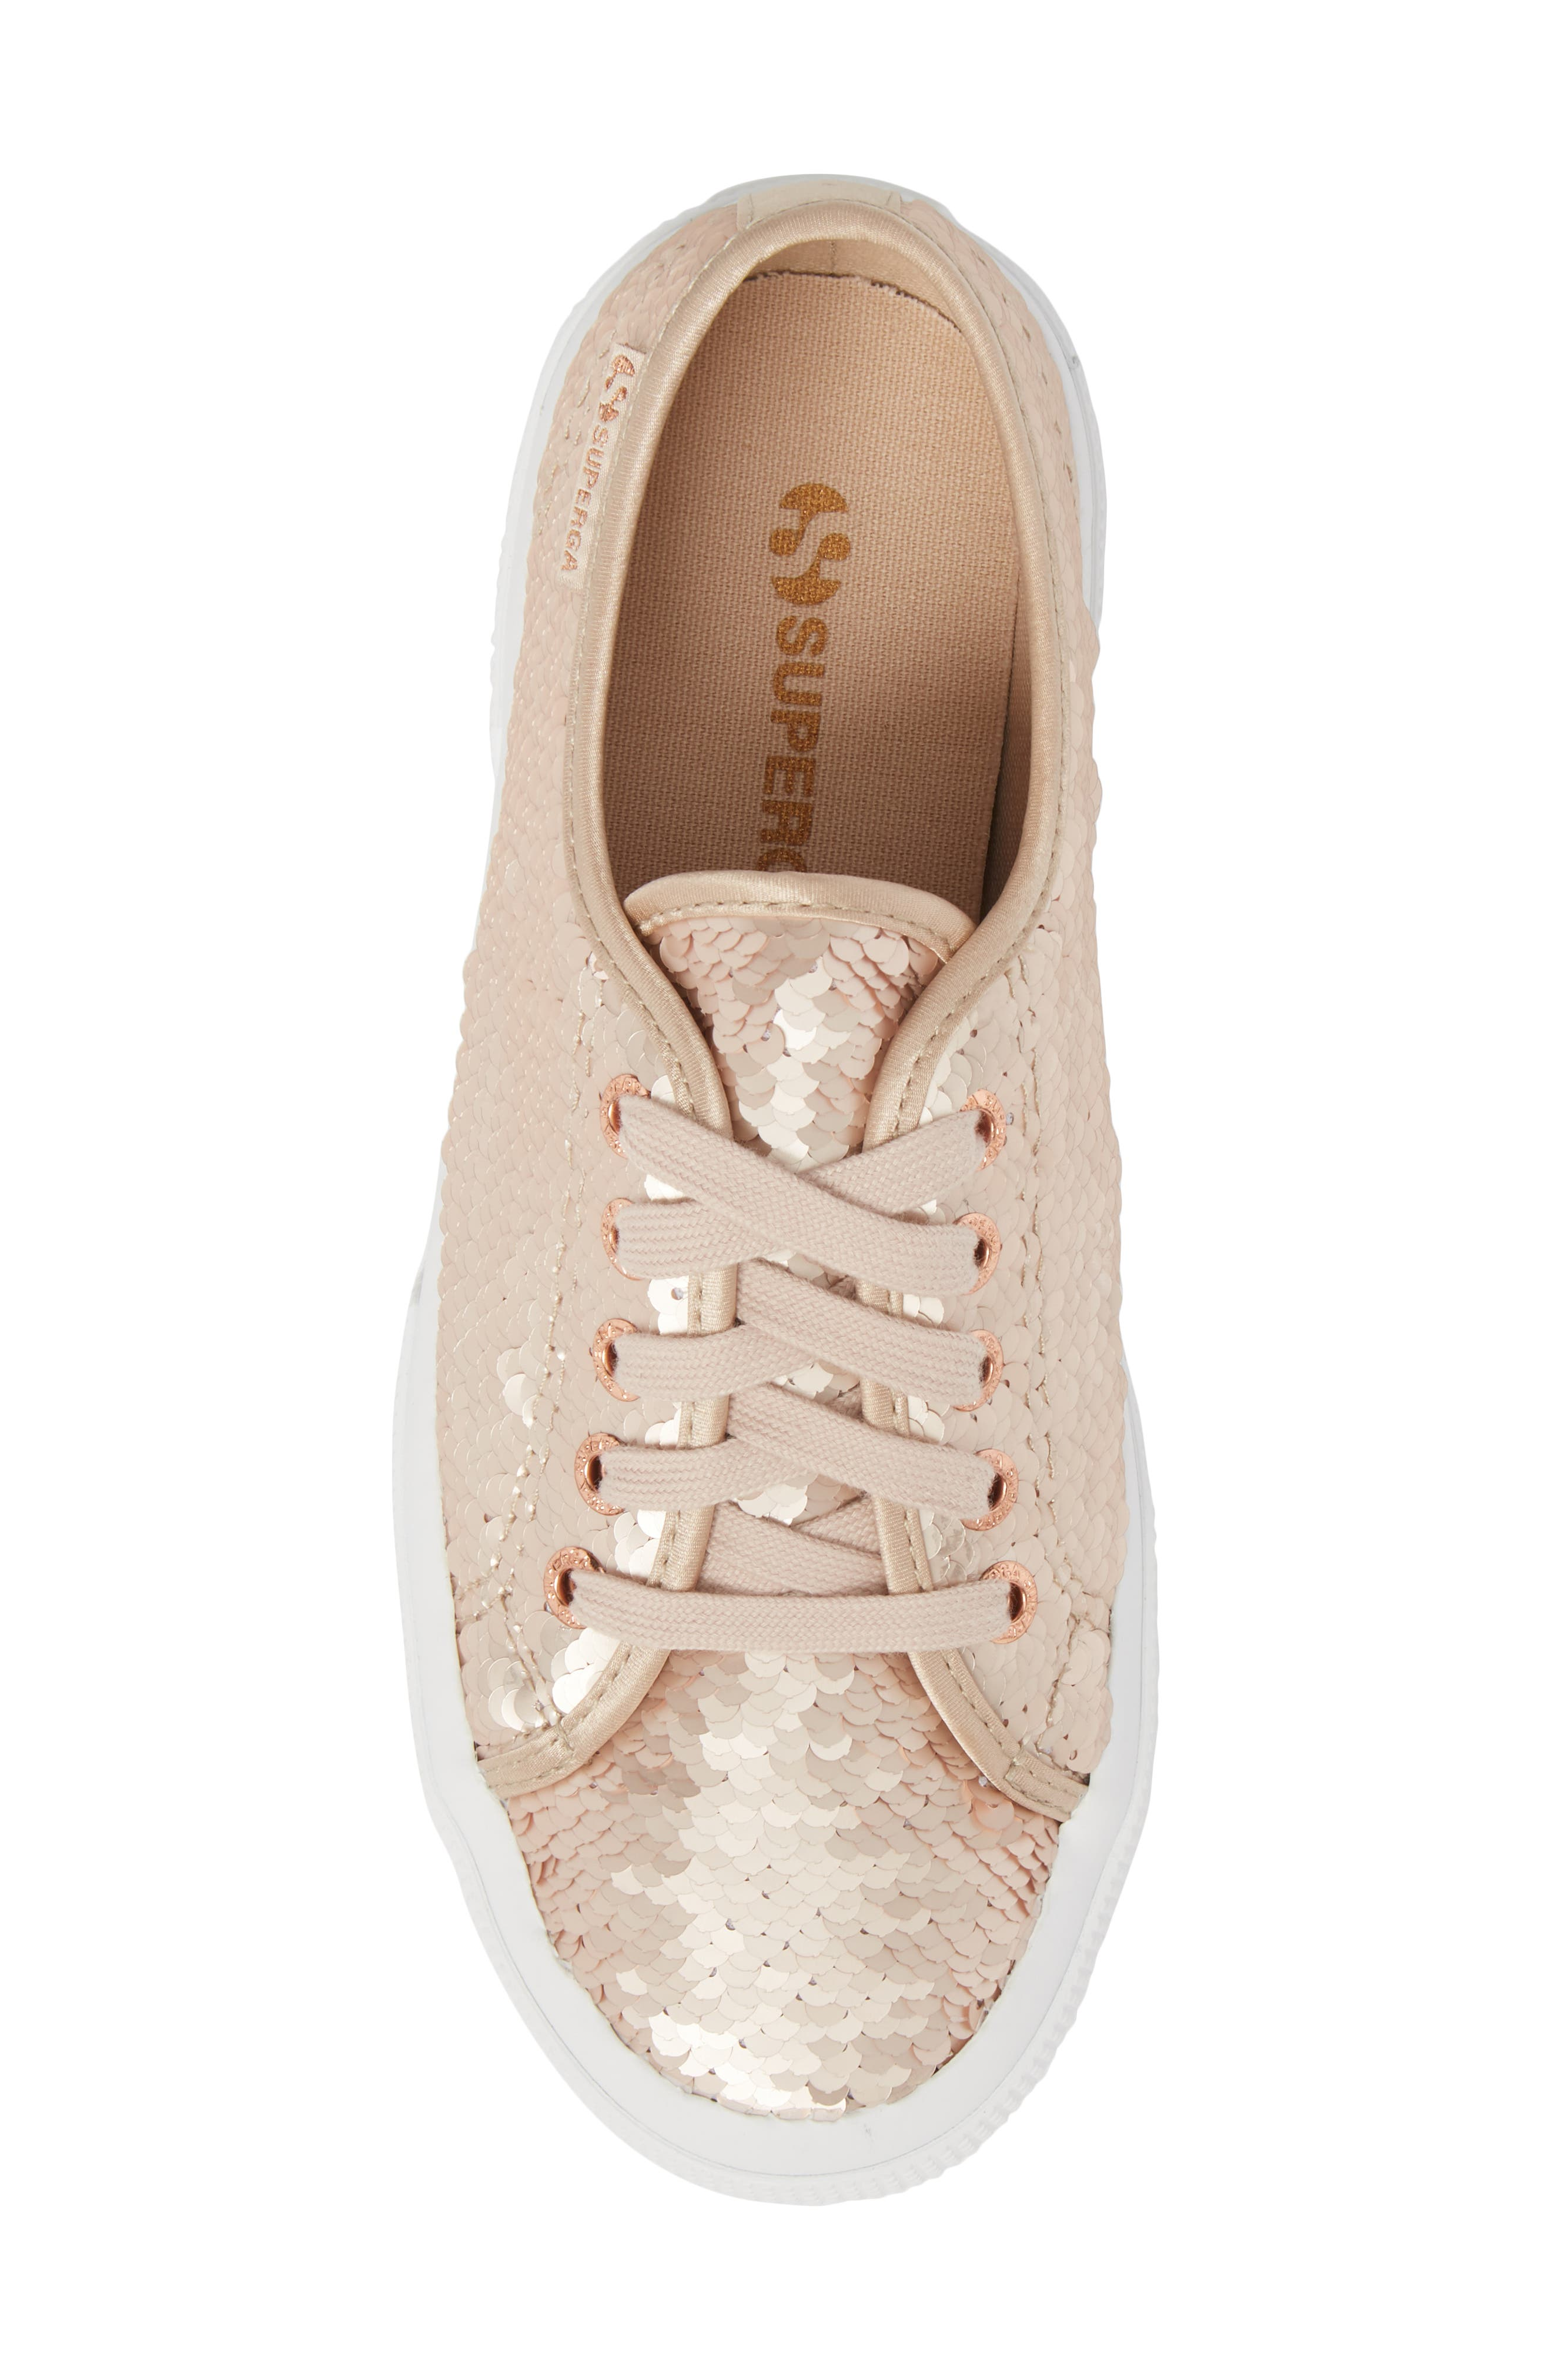 2750 Pairidescent Low Top Sneaker,                             Alternate thumbnail 5, color,                             Rose Gold/ Rose Gold